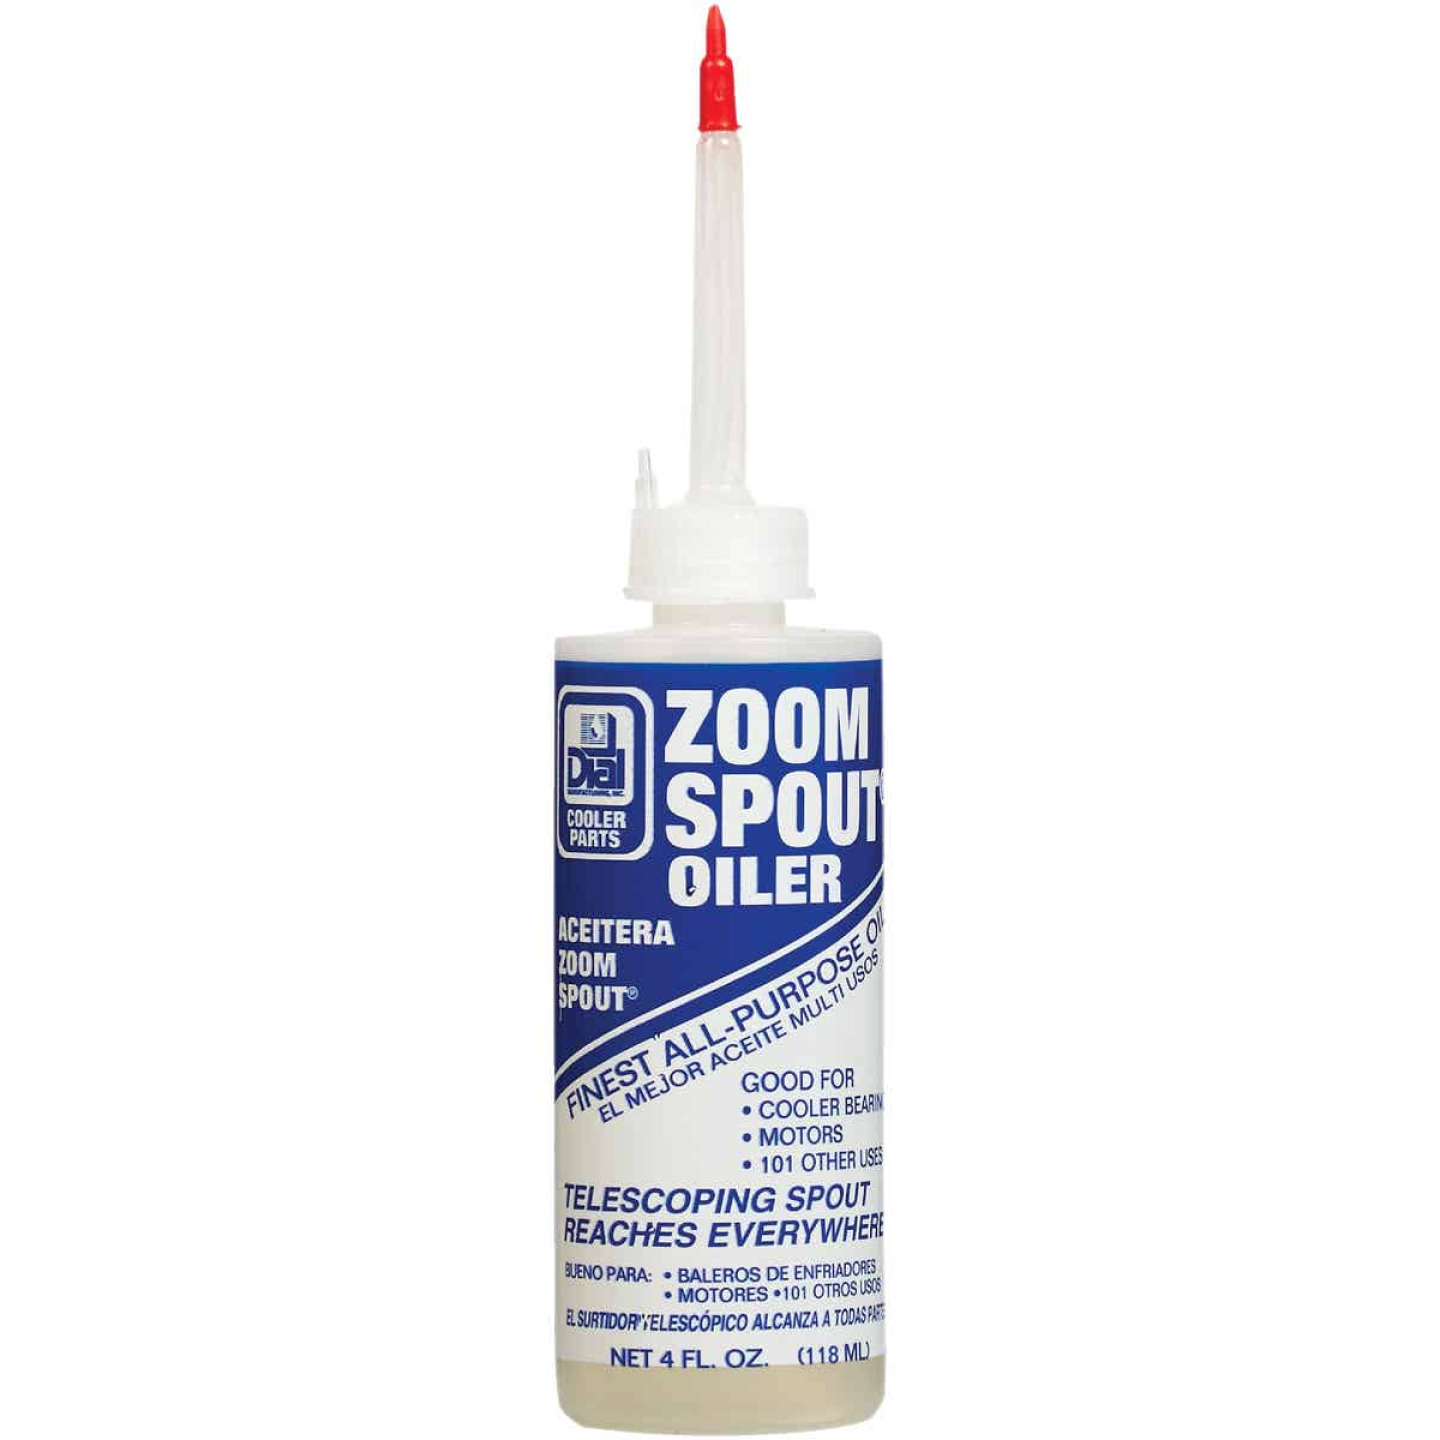 Dial Zoom Spout 4 Oz. Squeeze Bottle Multi-Purpose Lubricant Image 1